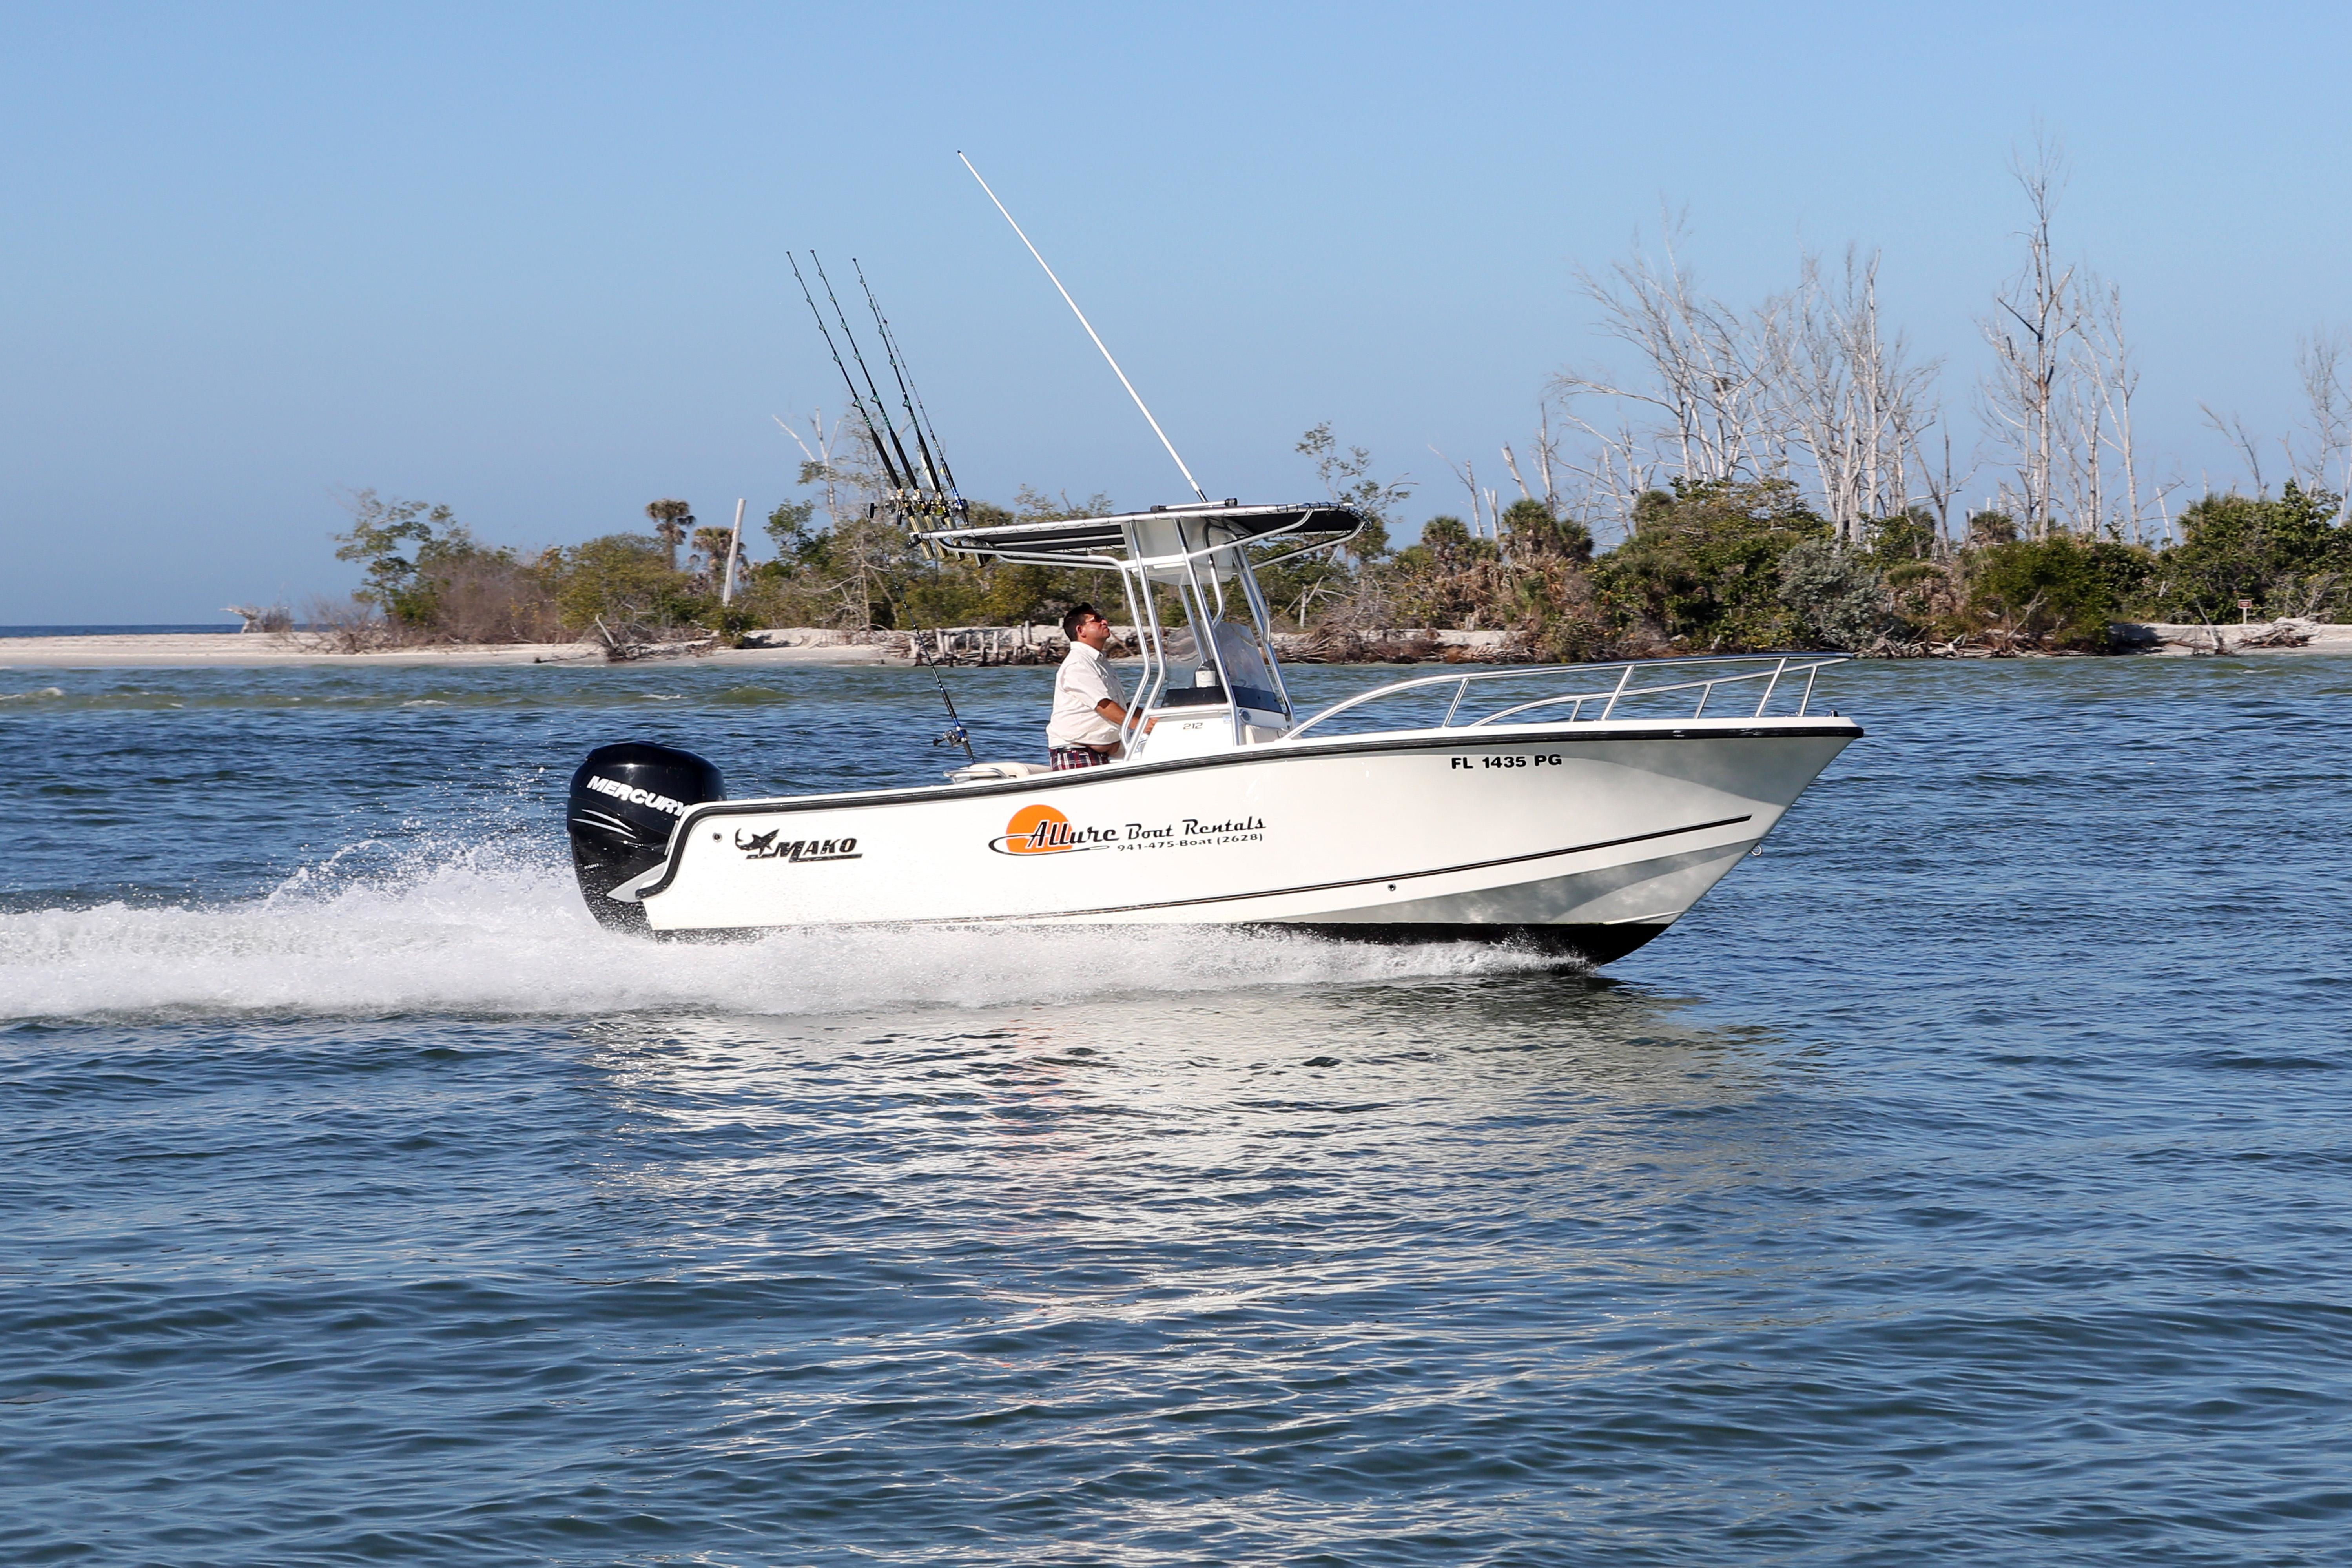 Allure boat rentals in englewood fl 34223 for Fishing in englewood florida